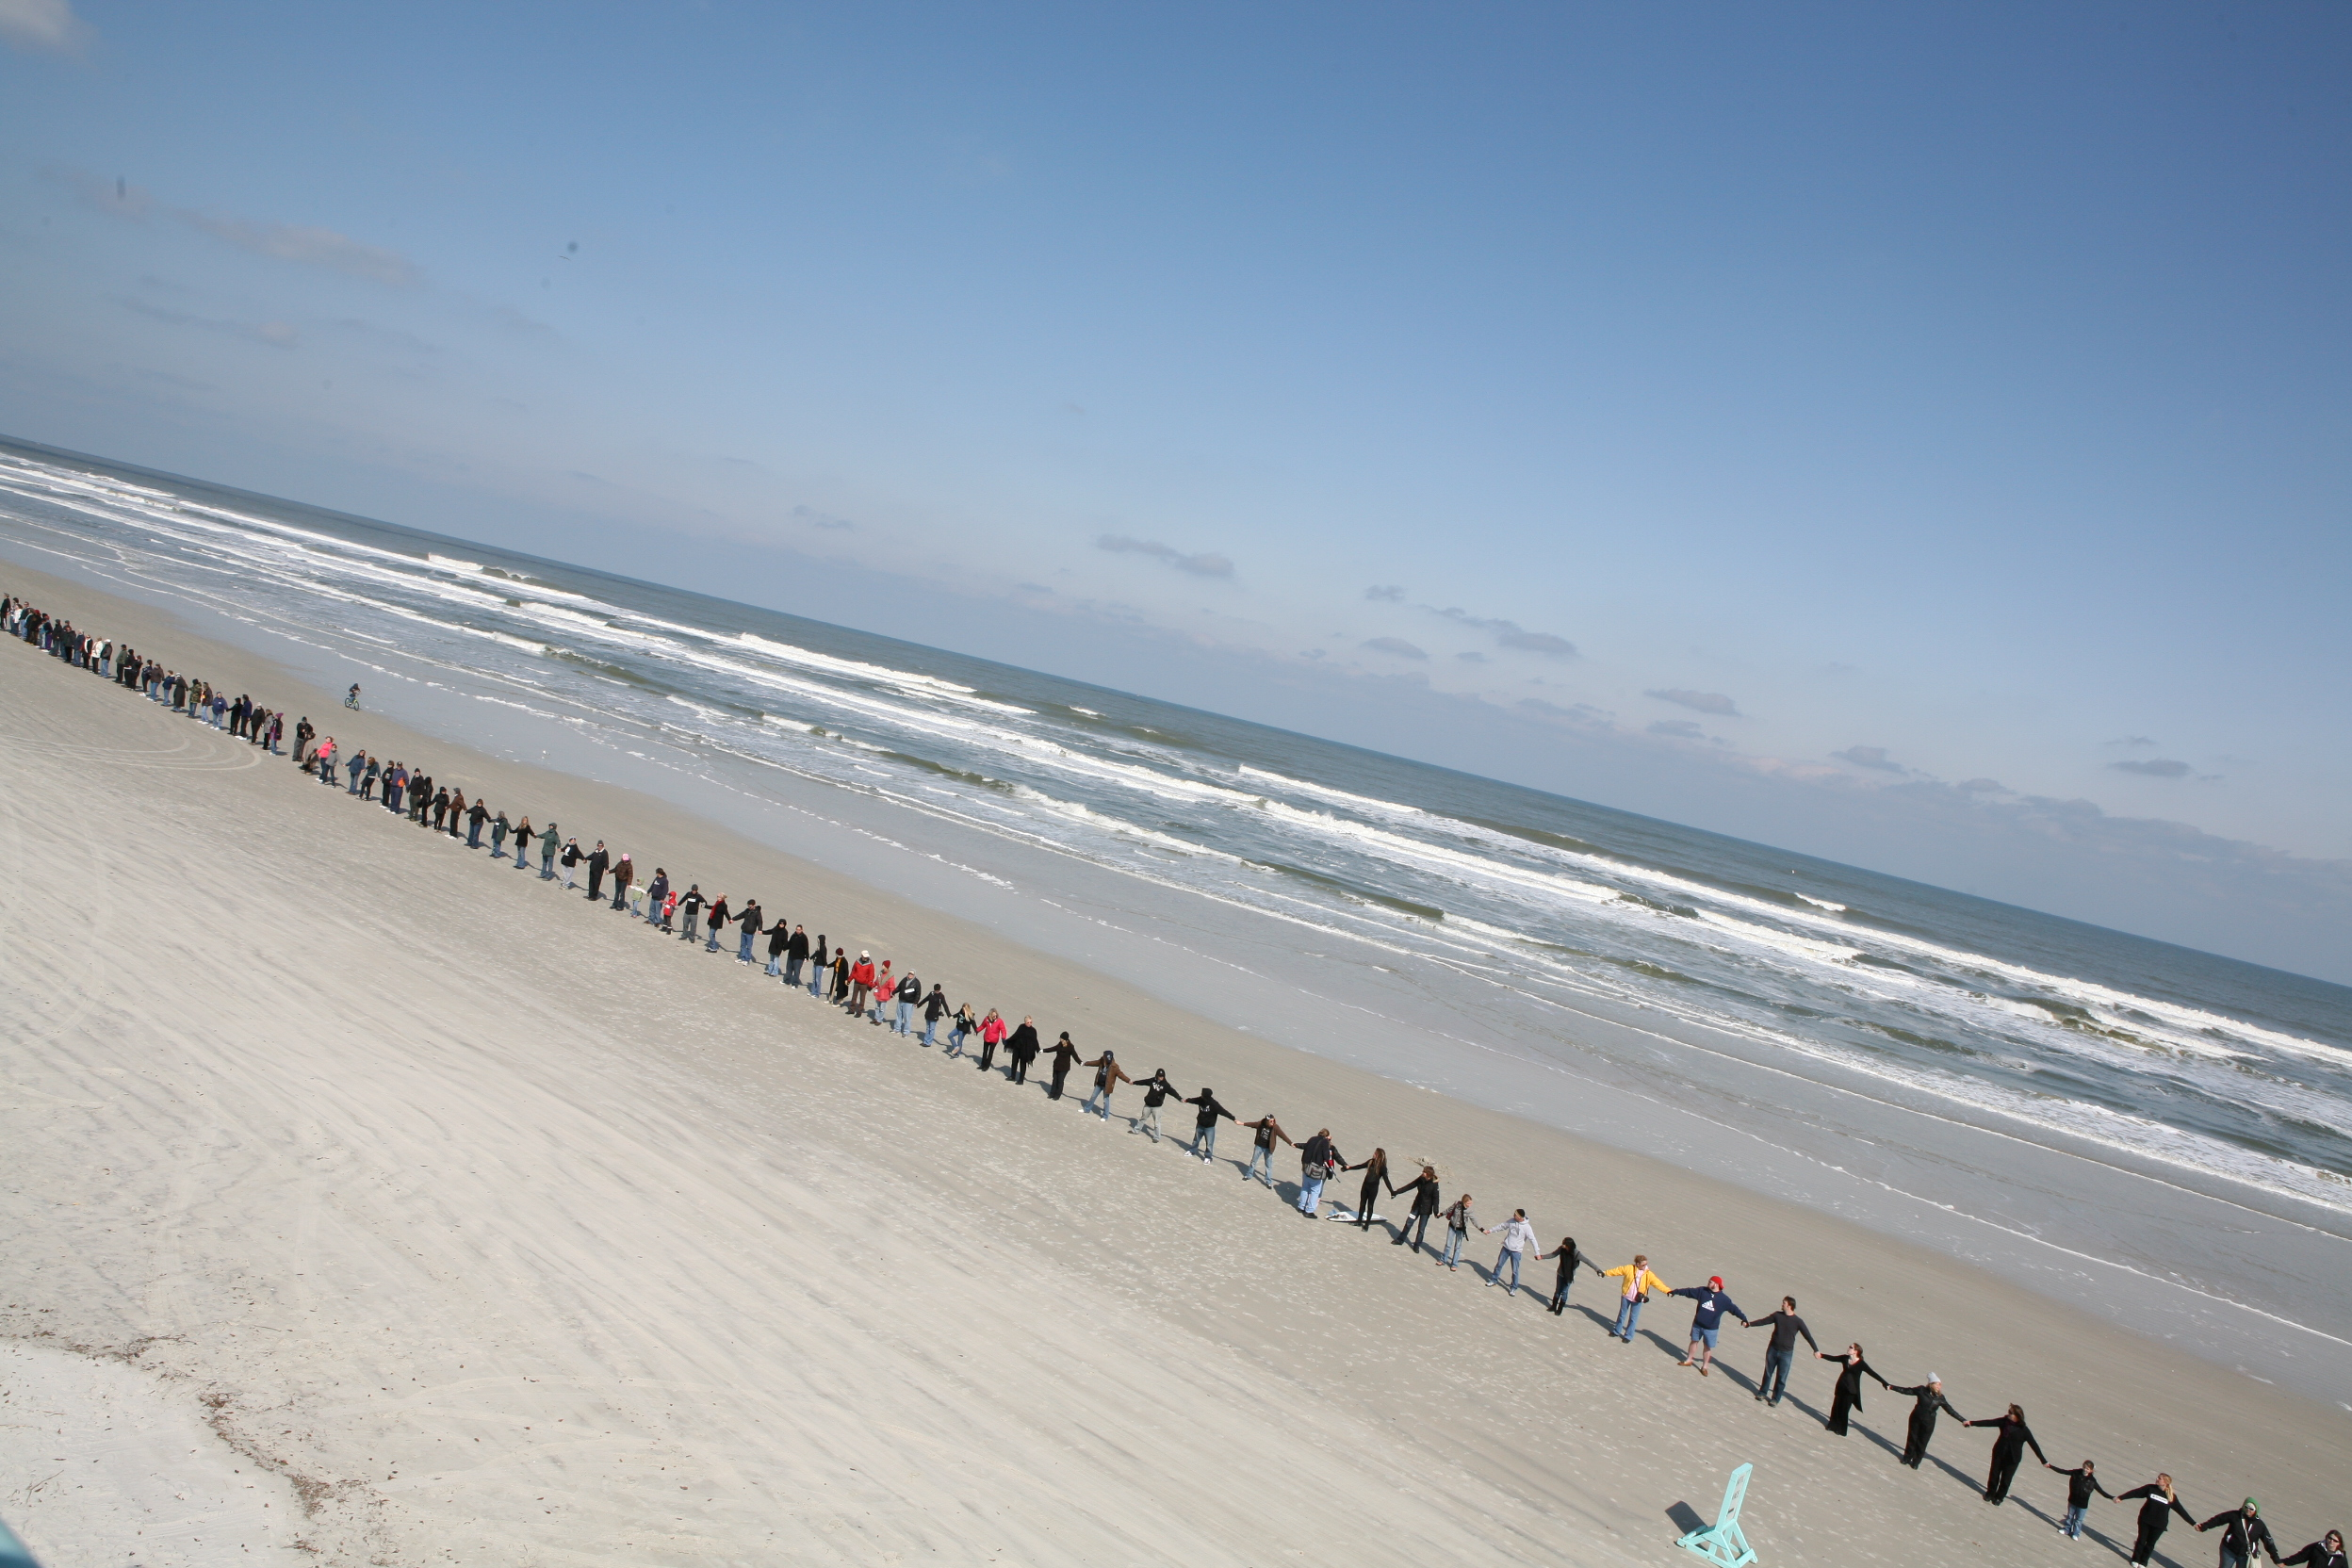 Hands Across the Sand/Land is May 18th!